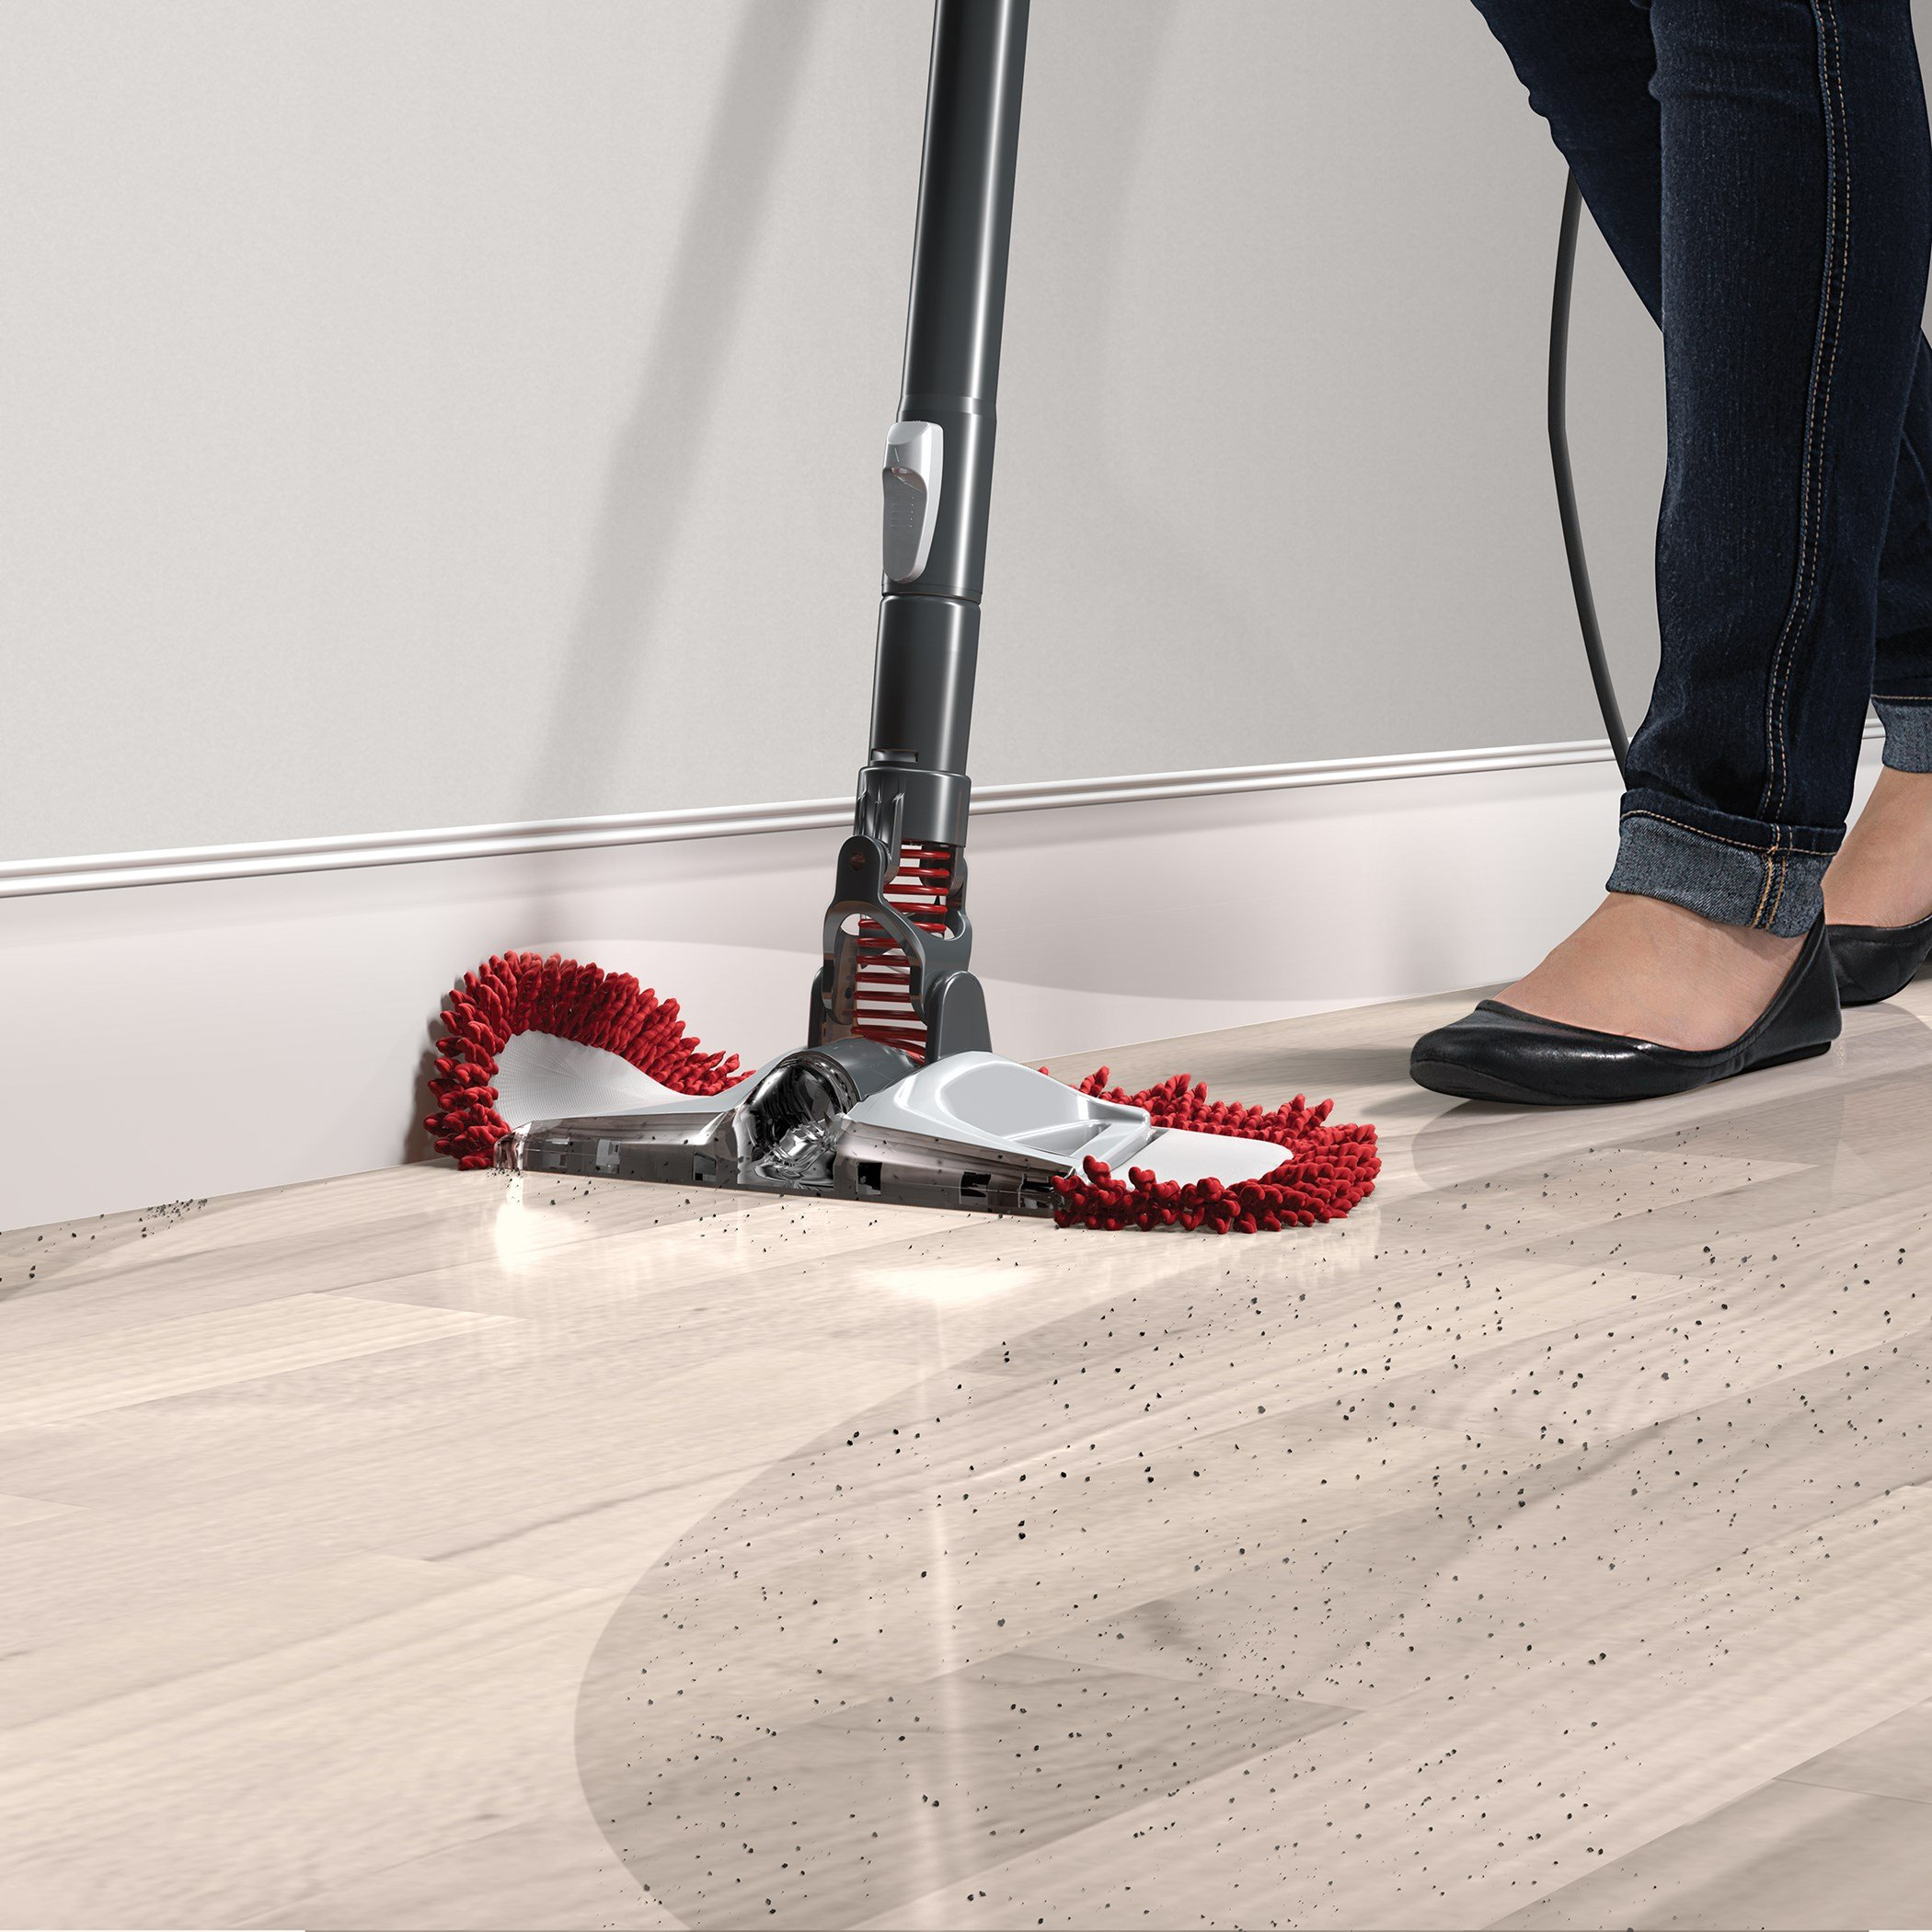 Dirt Devil Vacuum Cleaner 360 Reach Pro Corded Bagless Stick and Handheld Vacuum SD12515B by Dirt Devil (Image #7)